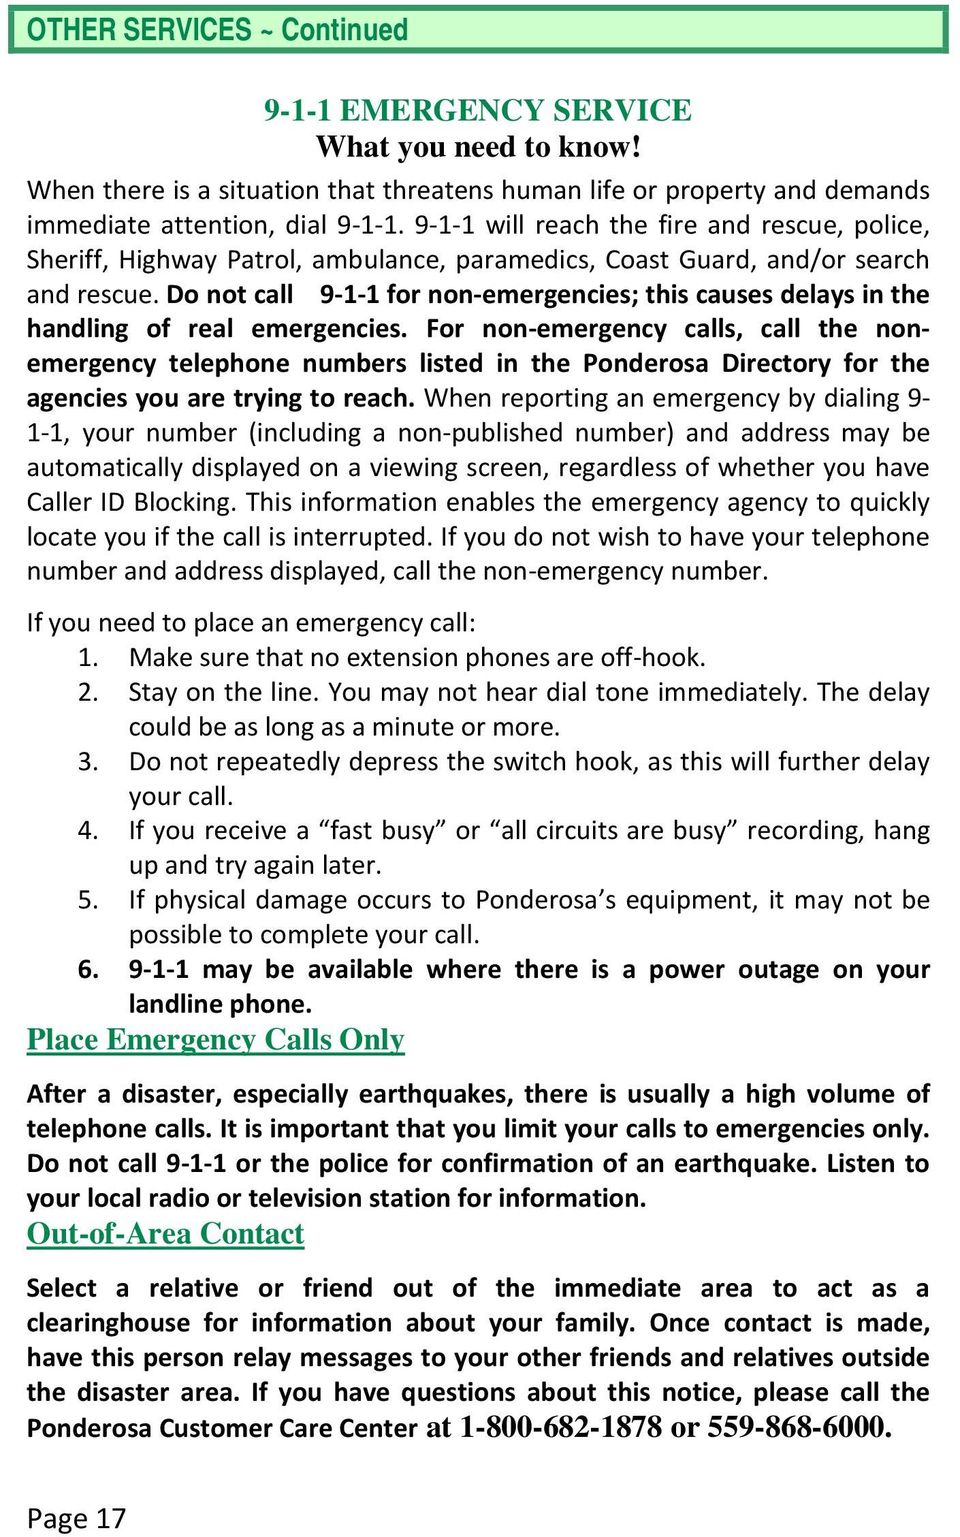 Do not call 9-1-1 for non-emergencies; this causes delays in the handling of real emergencies.